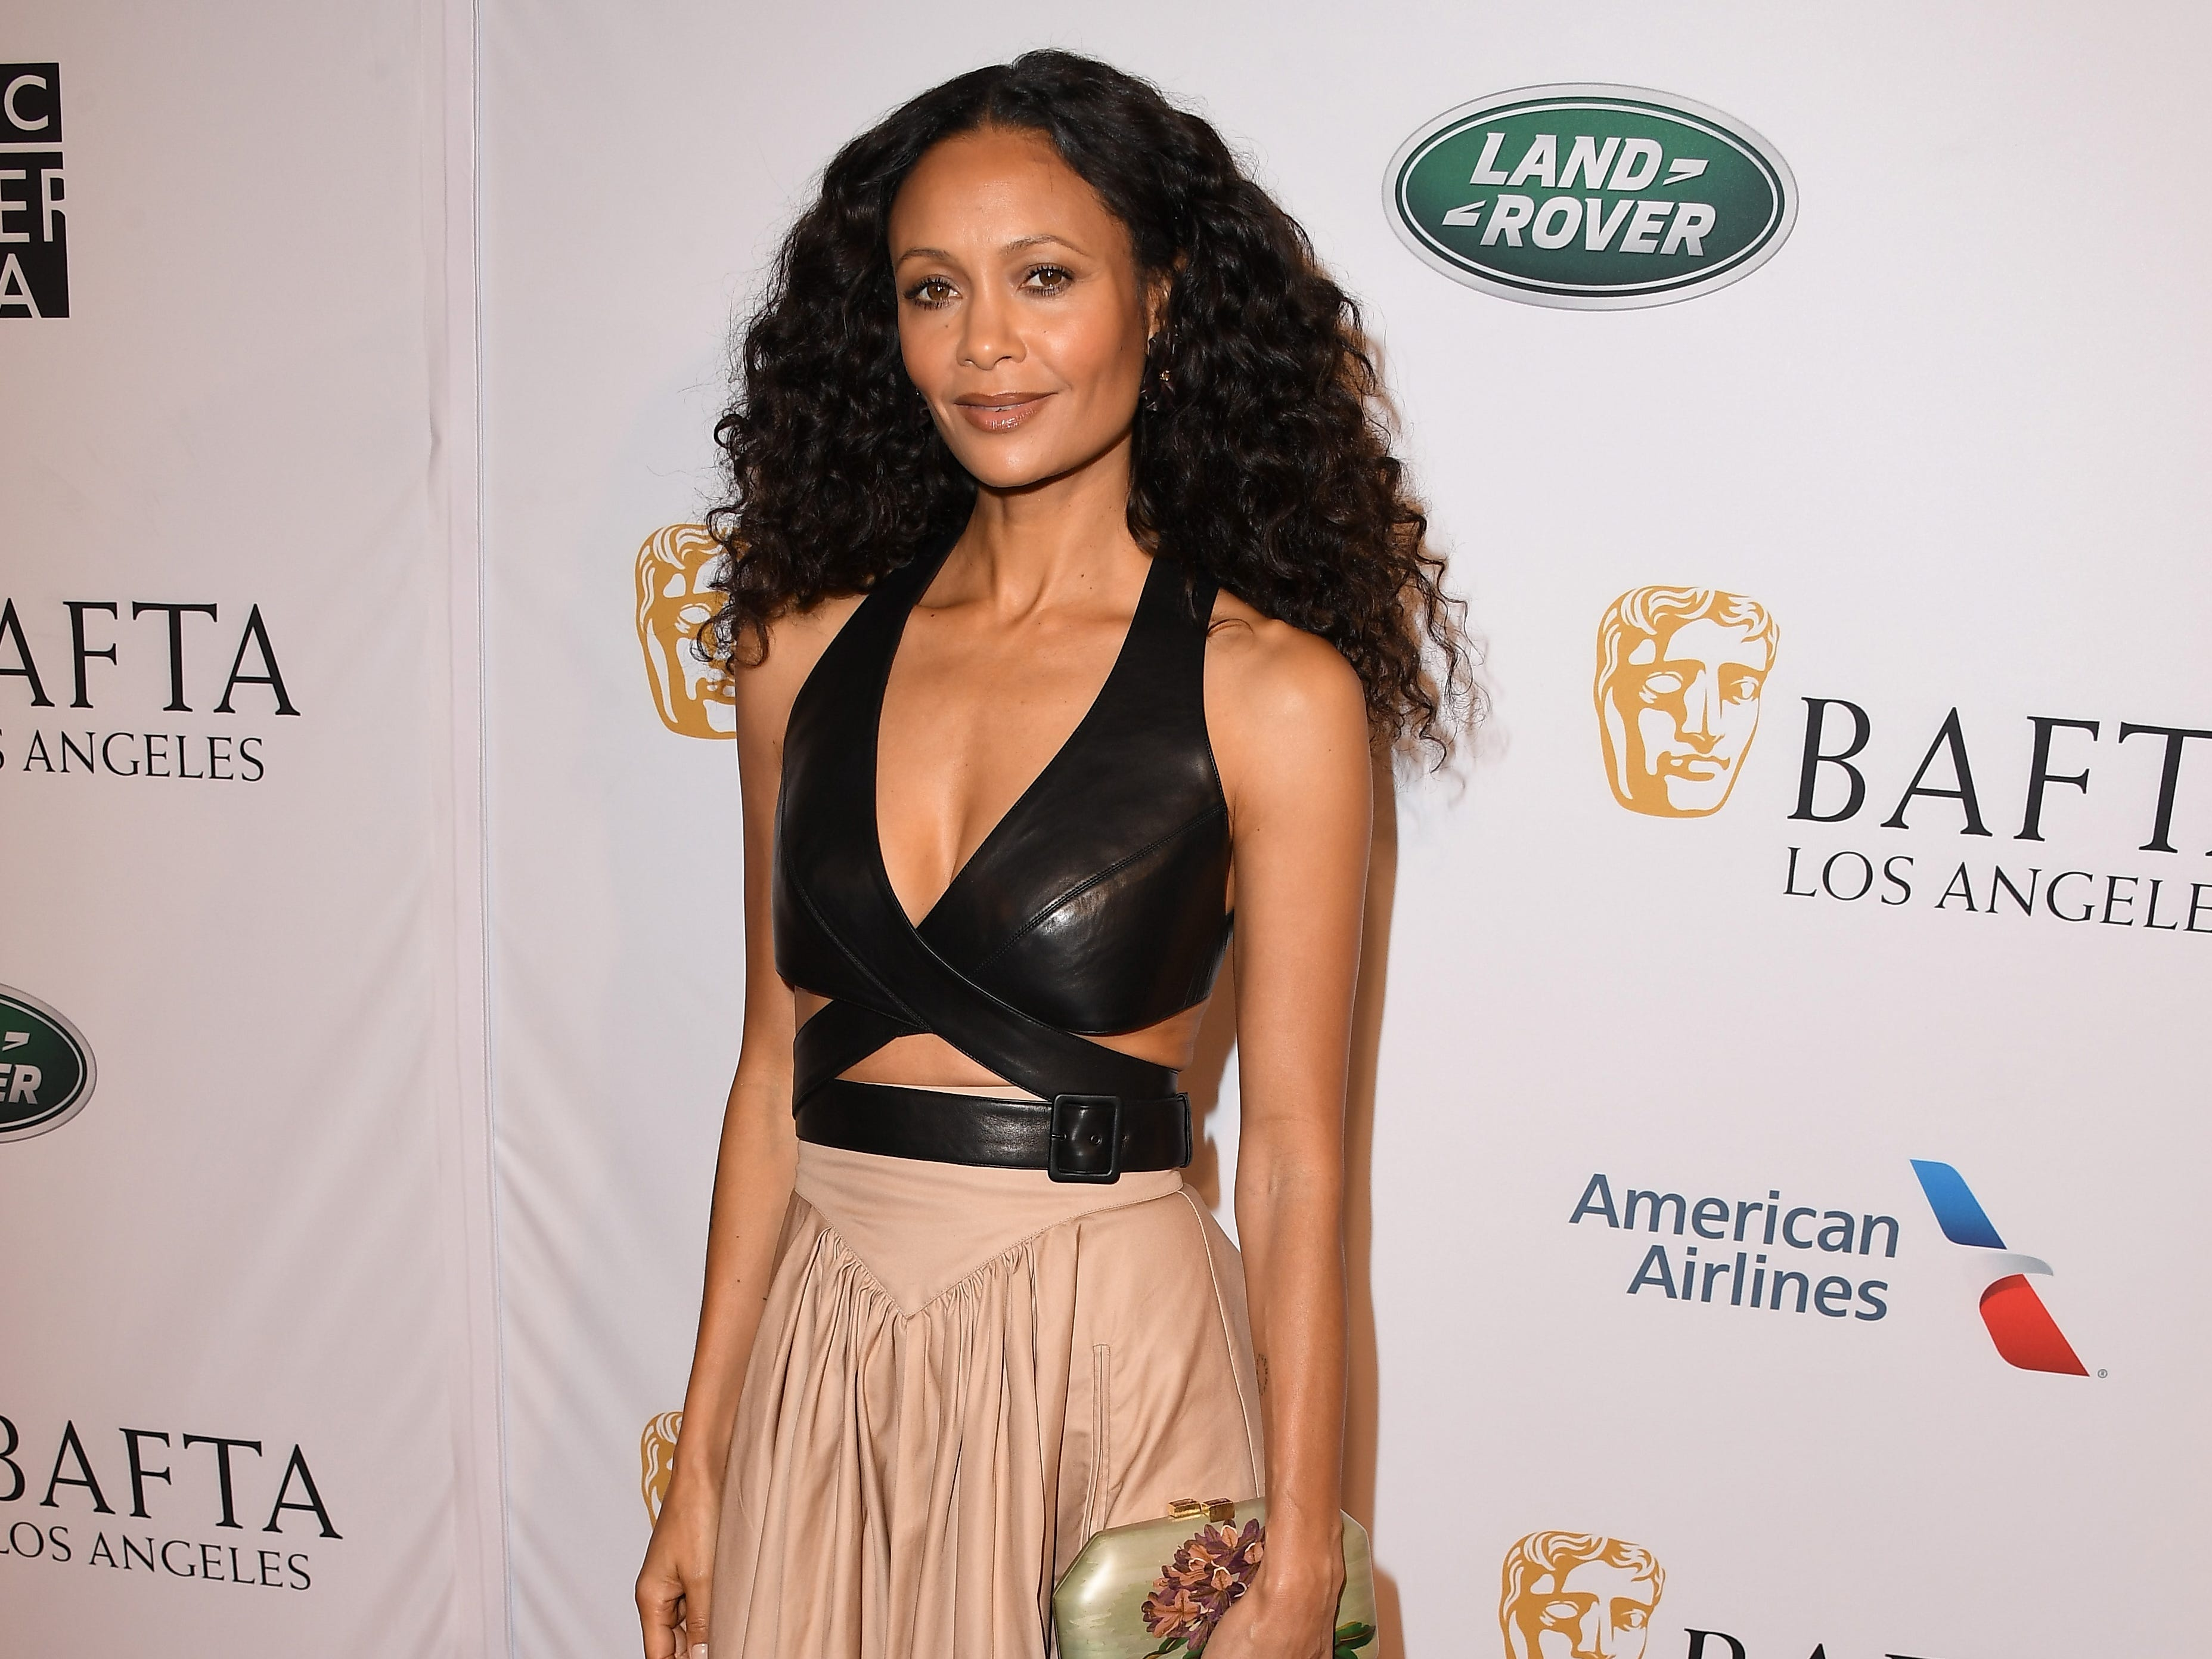 LOS ANGELES, CA - JANUARY 05:  Thandie Newton attends The BAFTA Los Angeles Tea Party at Four Seasons Hotel Los Angeles at Beverly Hills on January 5, 2019 in Los Angeles, California.  (Photo by Steve Granitz/WireImage) ORG XMIT: 775261683 ORIG FILE ID: 1077929472